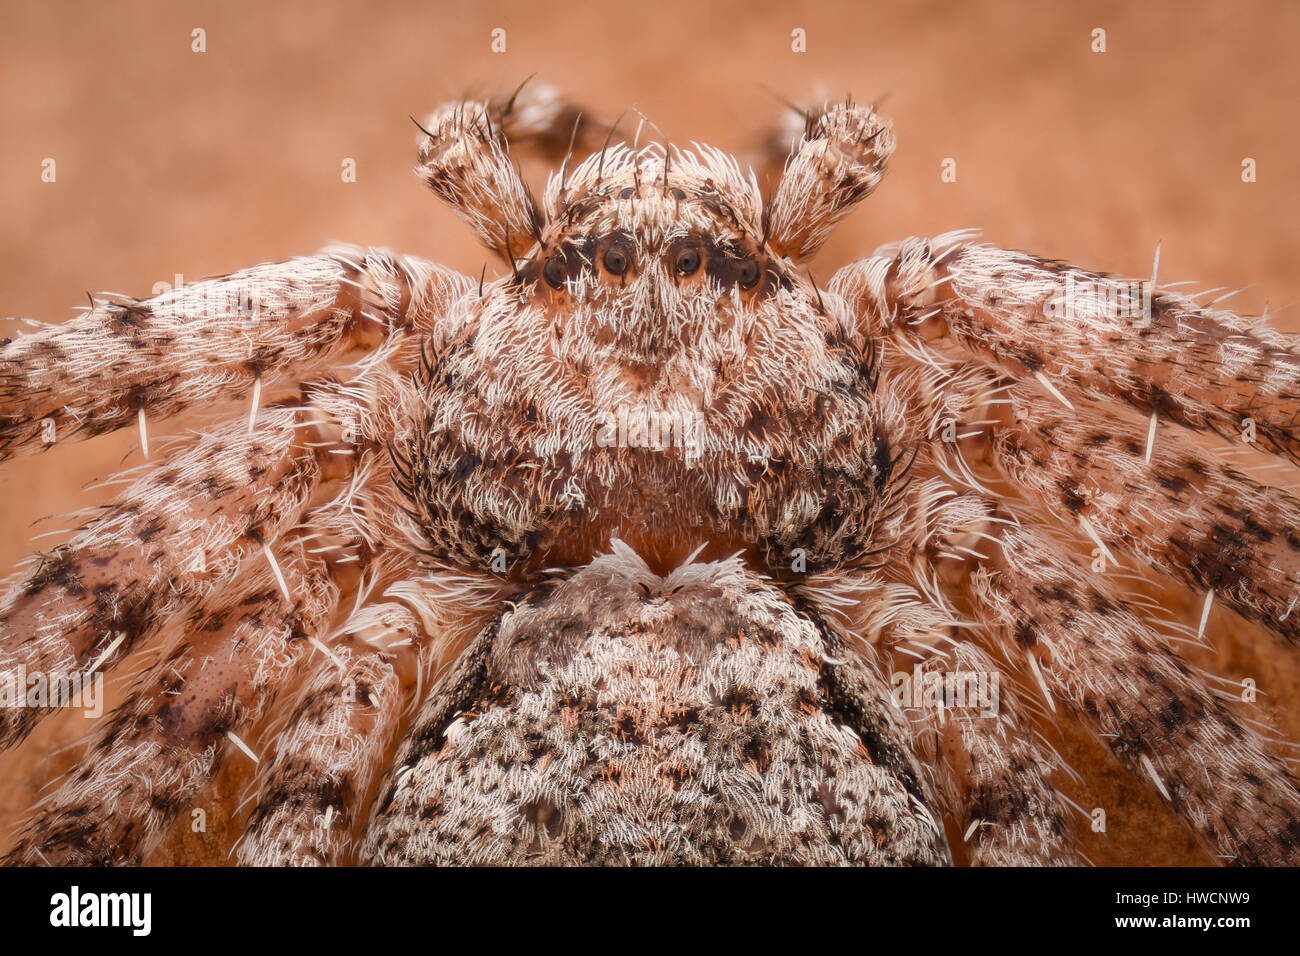 Extreme magnification - Crab spider - Stock Image